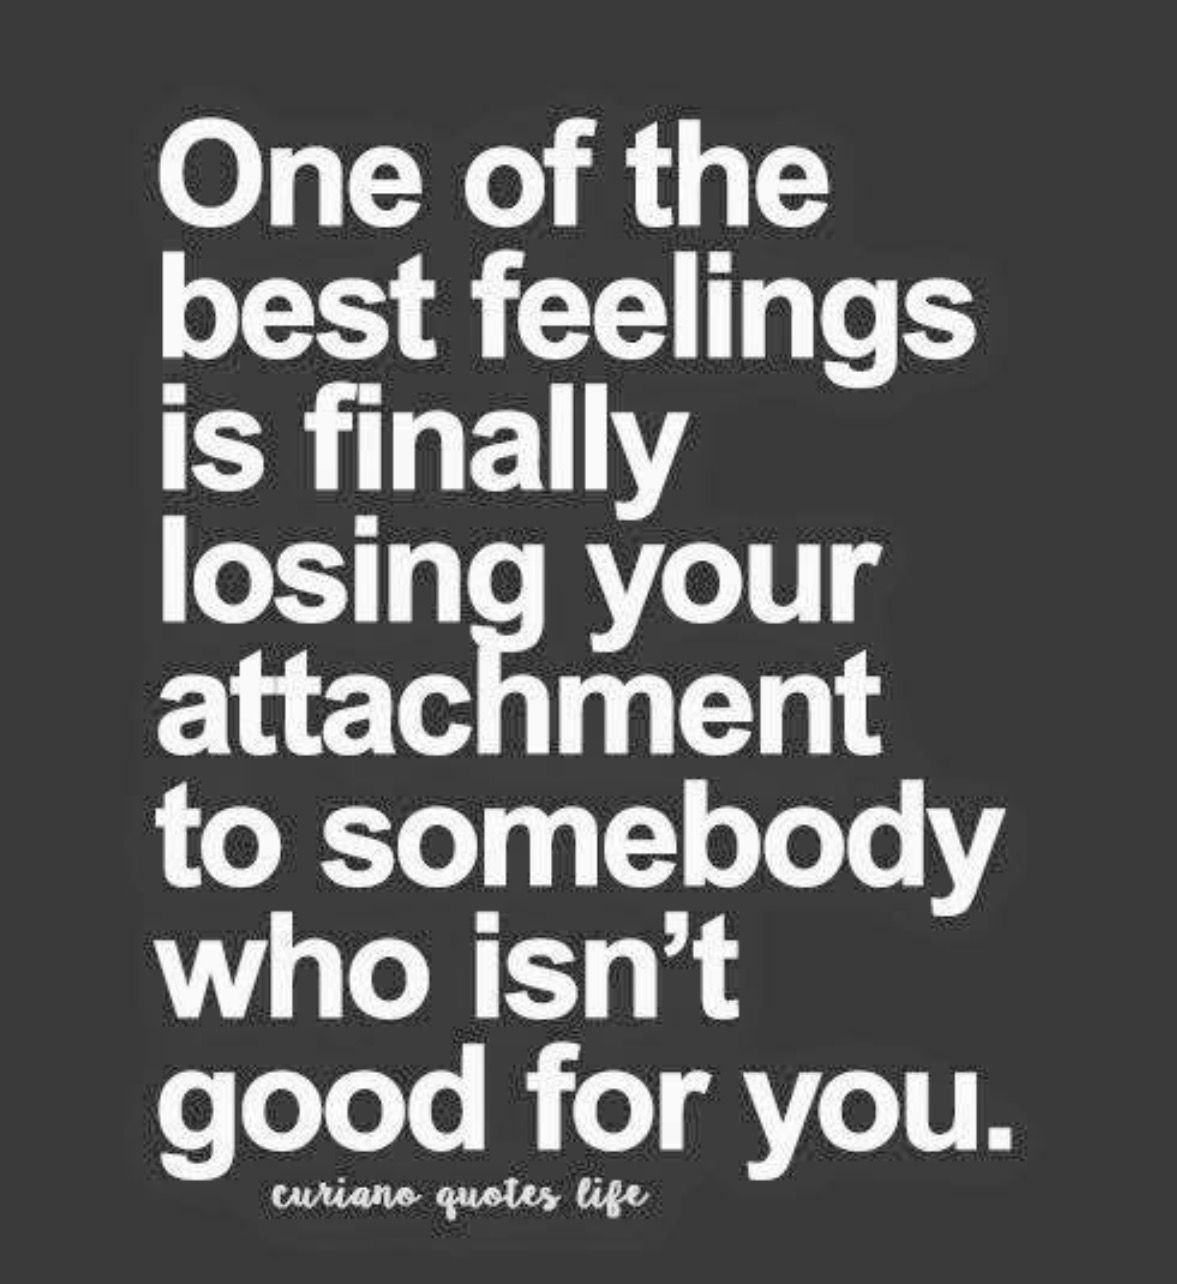 Quotes About Losing Friendships Pinkeri Marcionetti On I Believe Pinterest  Jehovah